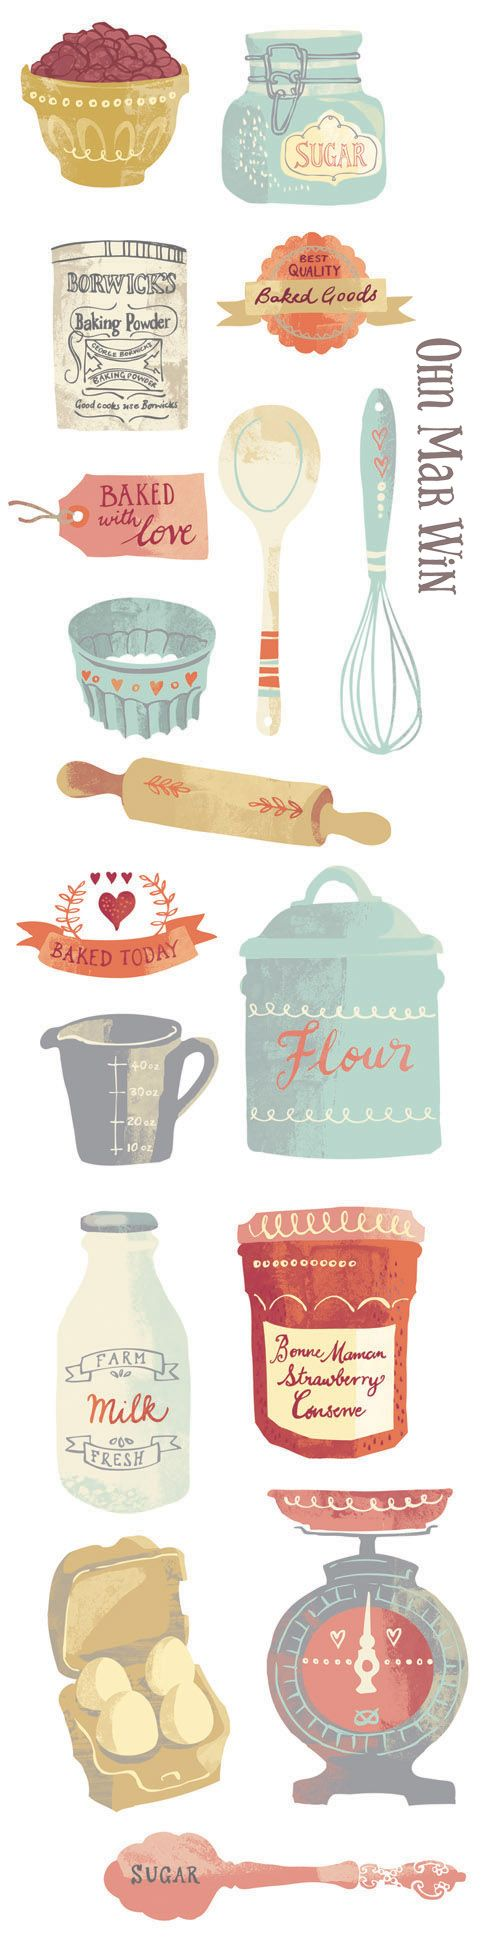 Delightful vintage inspired baking illustrations for this illustrated recipe for the classic scone. OHN MAR WIN @ohnmarwin #art #illustration #food